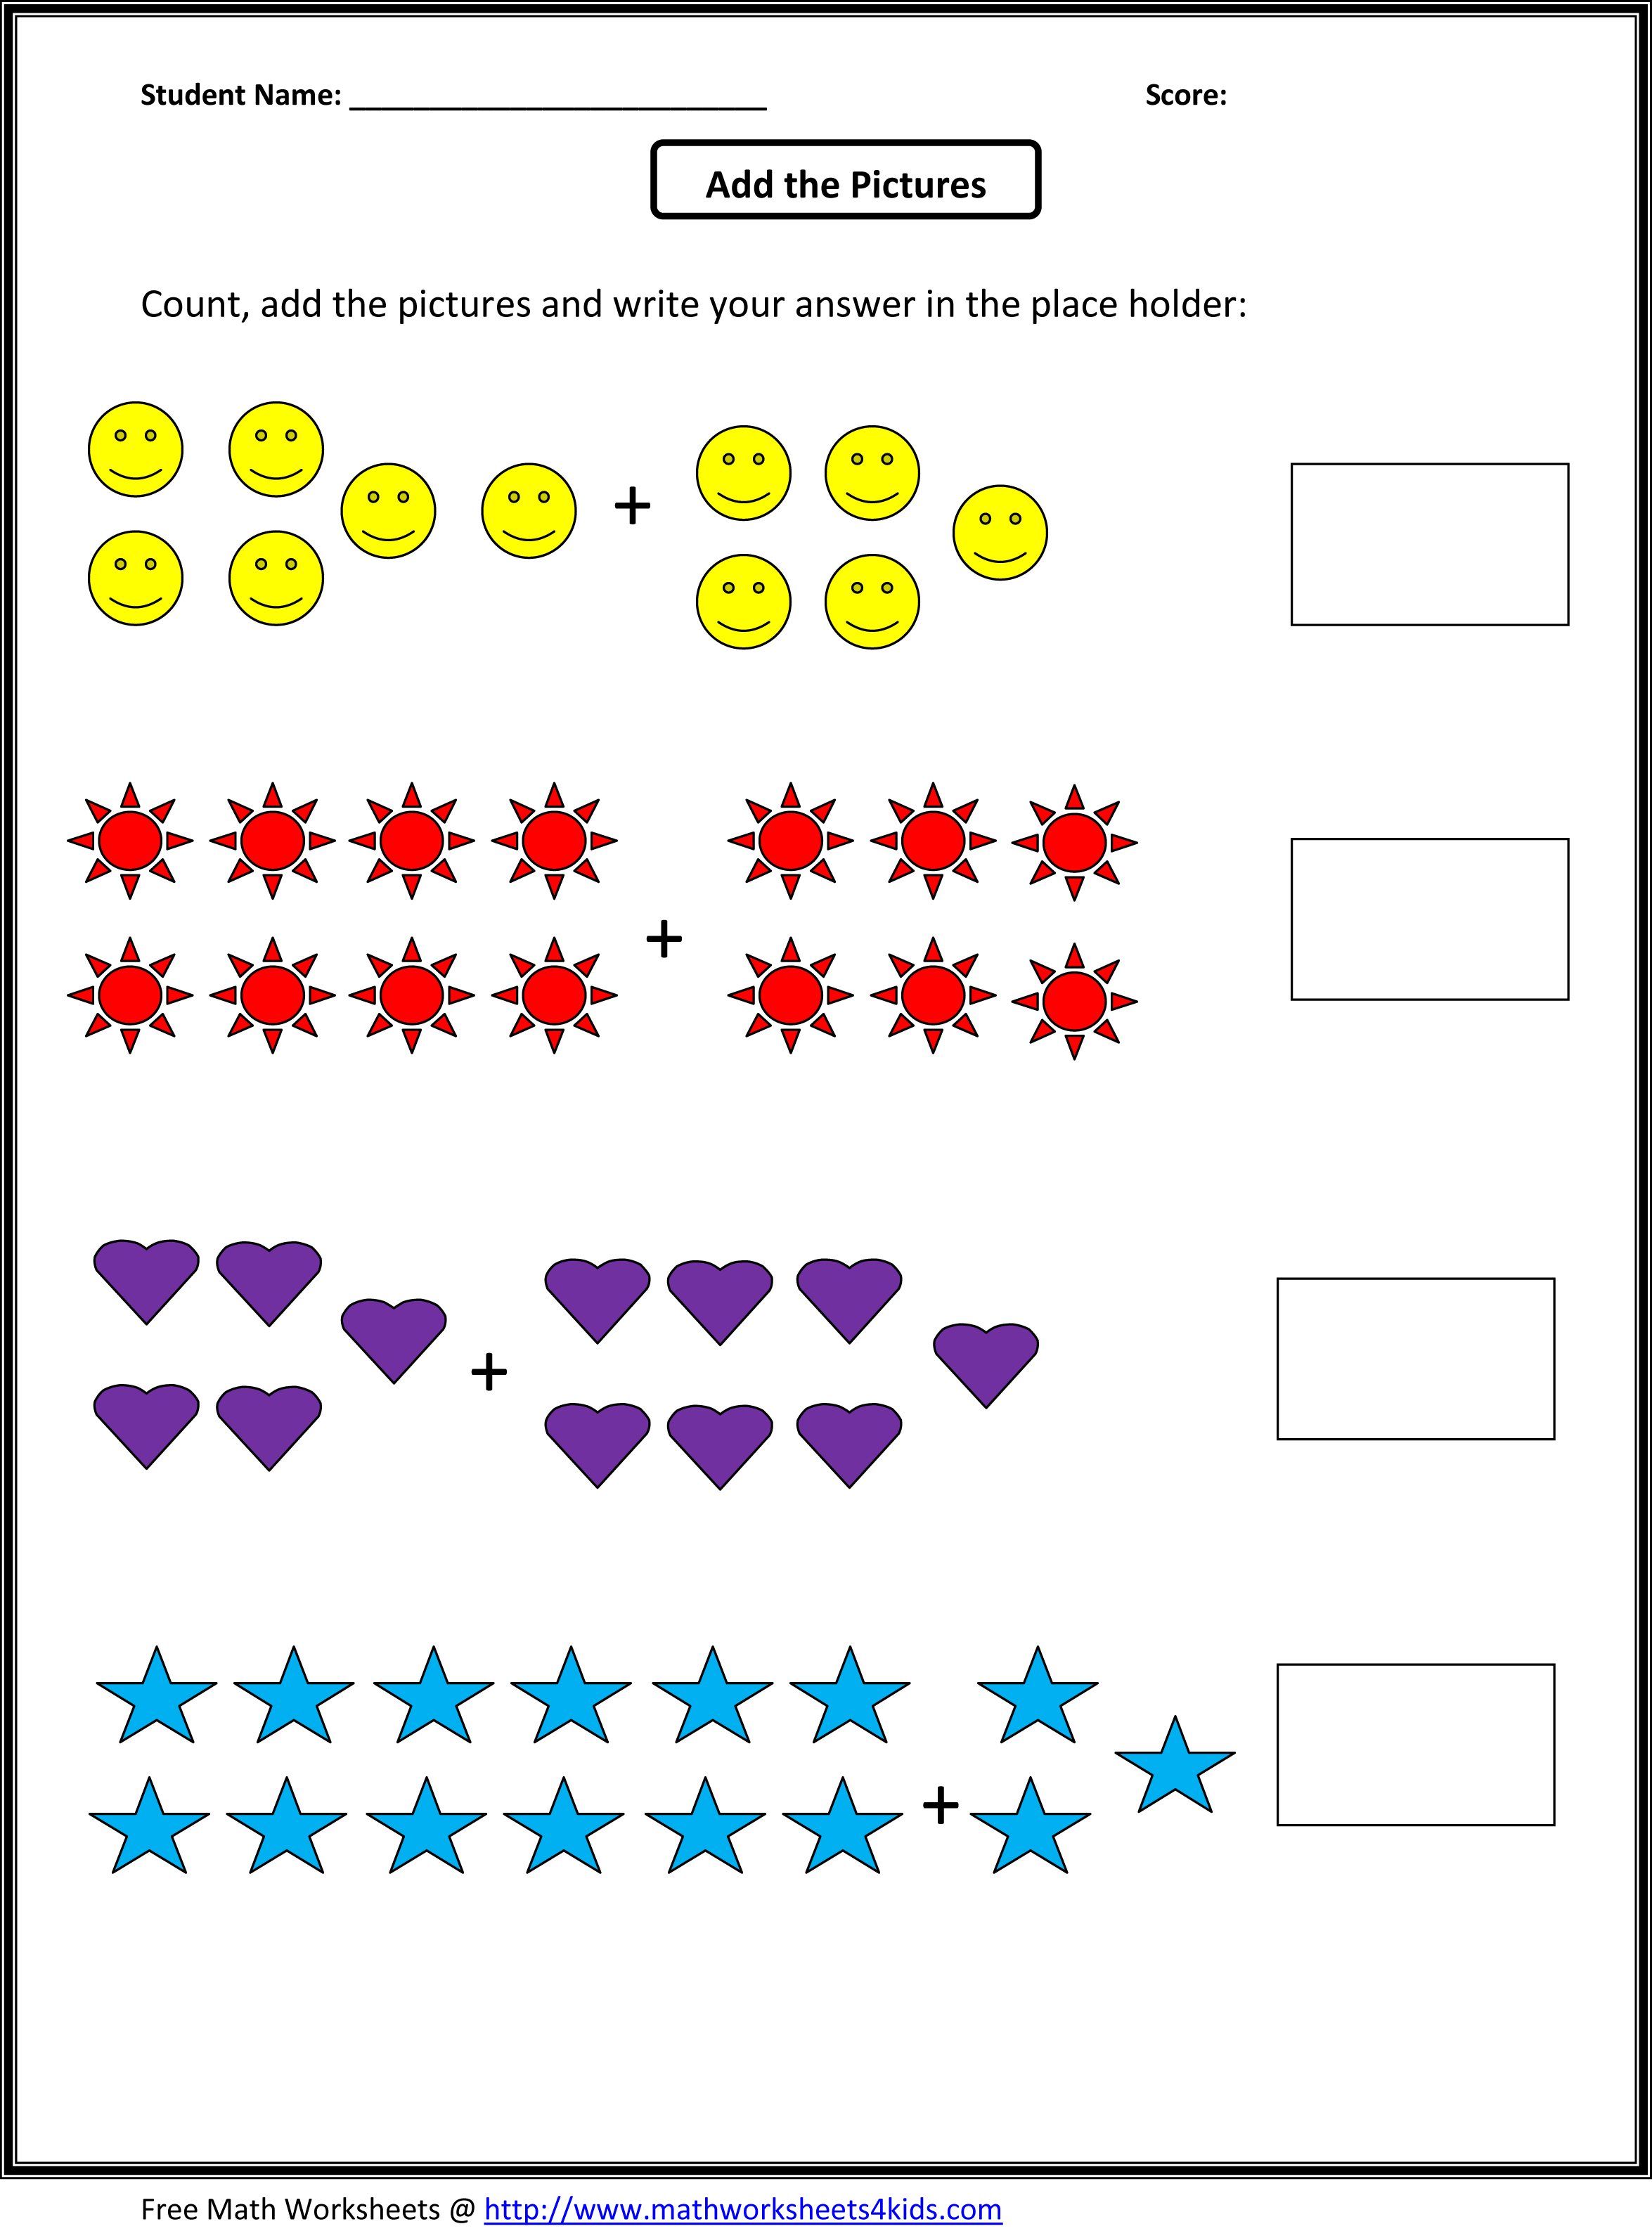 Weirdmailus  Personable Grade  Maths Worksheet  Reocurent With Fetching Math Worksheets For St Grade Free  Reocurent With Amusing Verb Worksheet Also Mendelian Genetics Worksheet Answers In Addition Piecewise Functions Worksheet With Answers And Planet Worksheets As Well As Food Pyramid Worksheets Additionally Rd Grade Vocabulary Worksheets From Reocurentcom With Weirdmailus  Fetching Grade  Maths Worksheet  Reocurent With Amusing Math Worksheets For St Grade Free  Reocurent And Personable Verb Worksheet Also Mendelian Genetics Worksheet Answers In Addition Piecewise Functions Worksheet With Answers From Reocurentcom